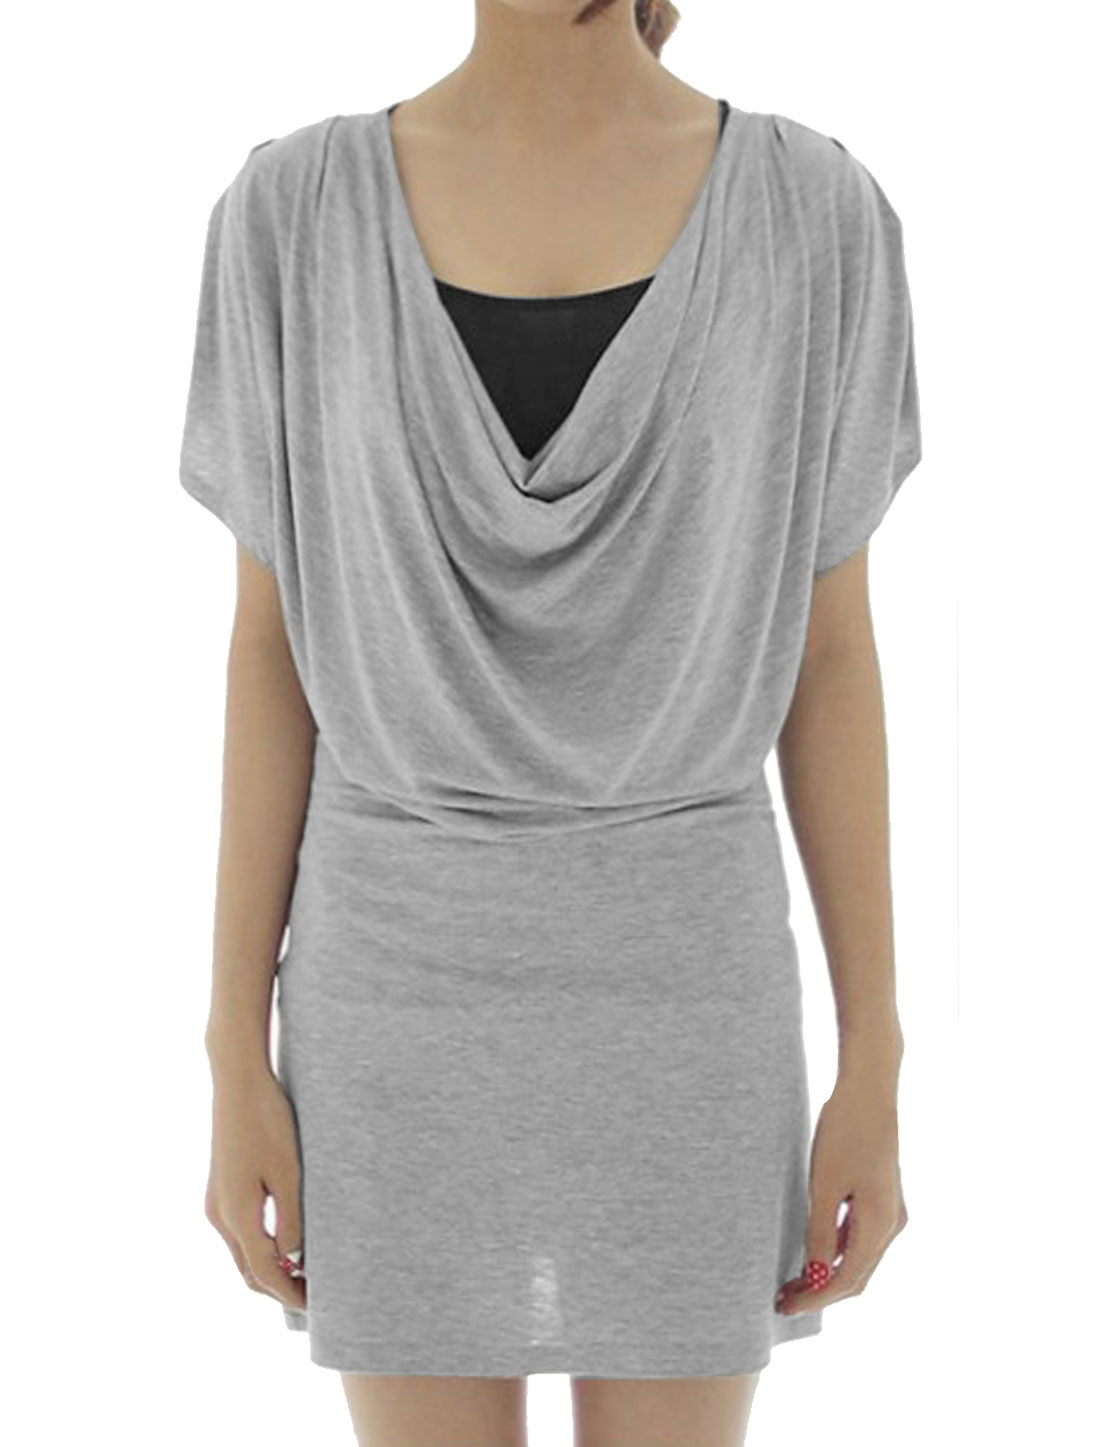 Short Dolman Sleeve Cowl Neck Blouson Gray Dress w Black Cami for LadiesL